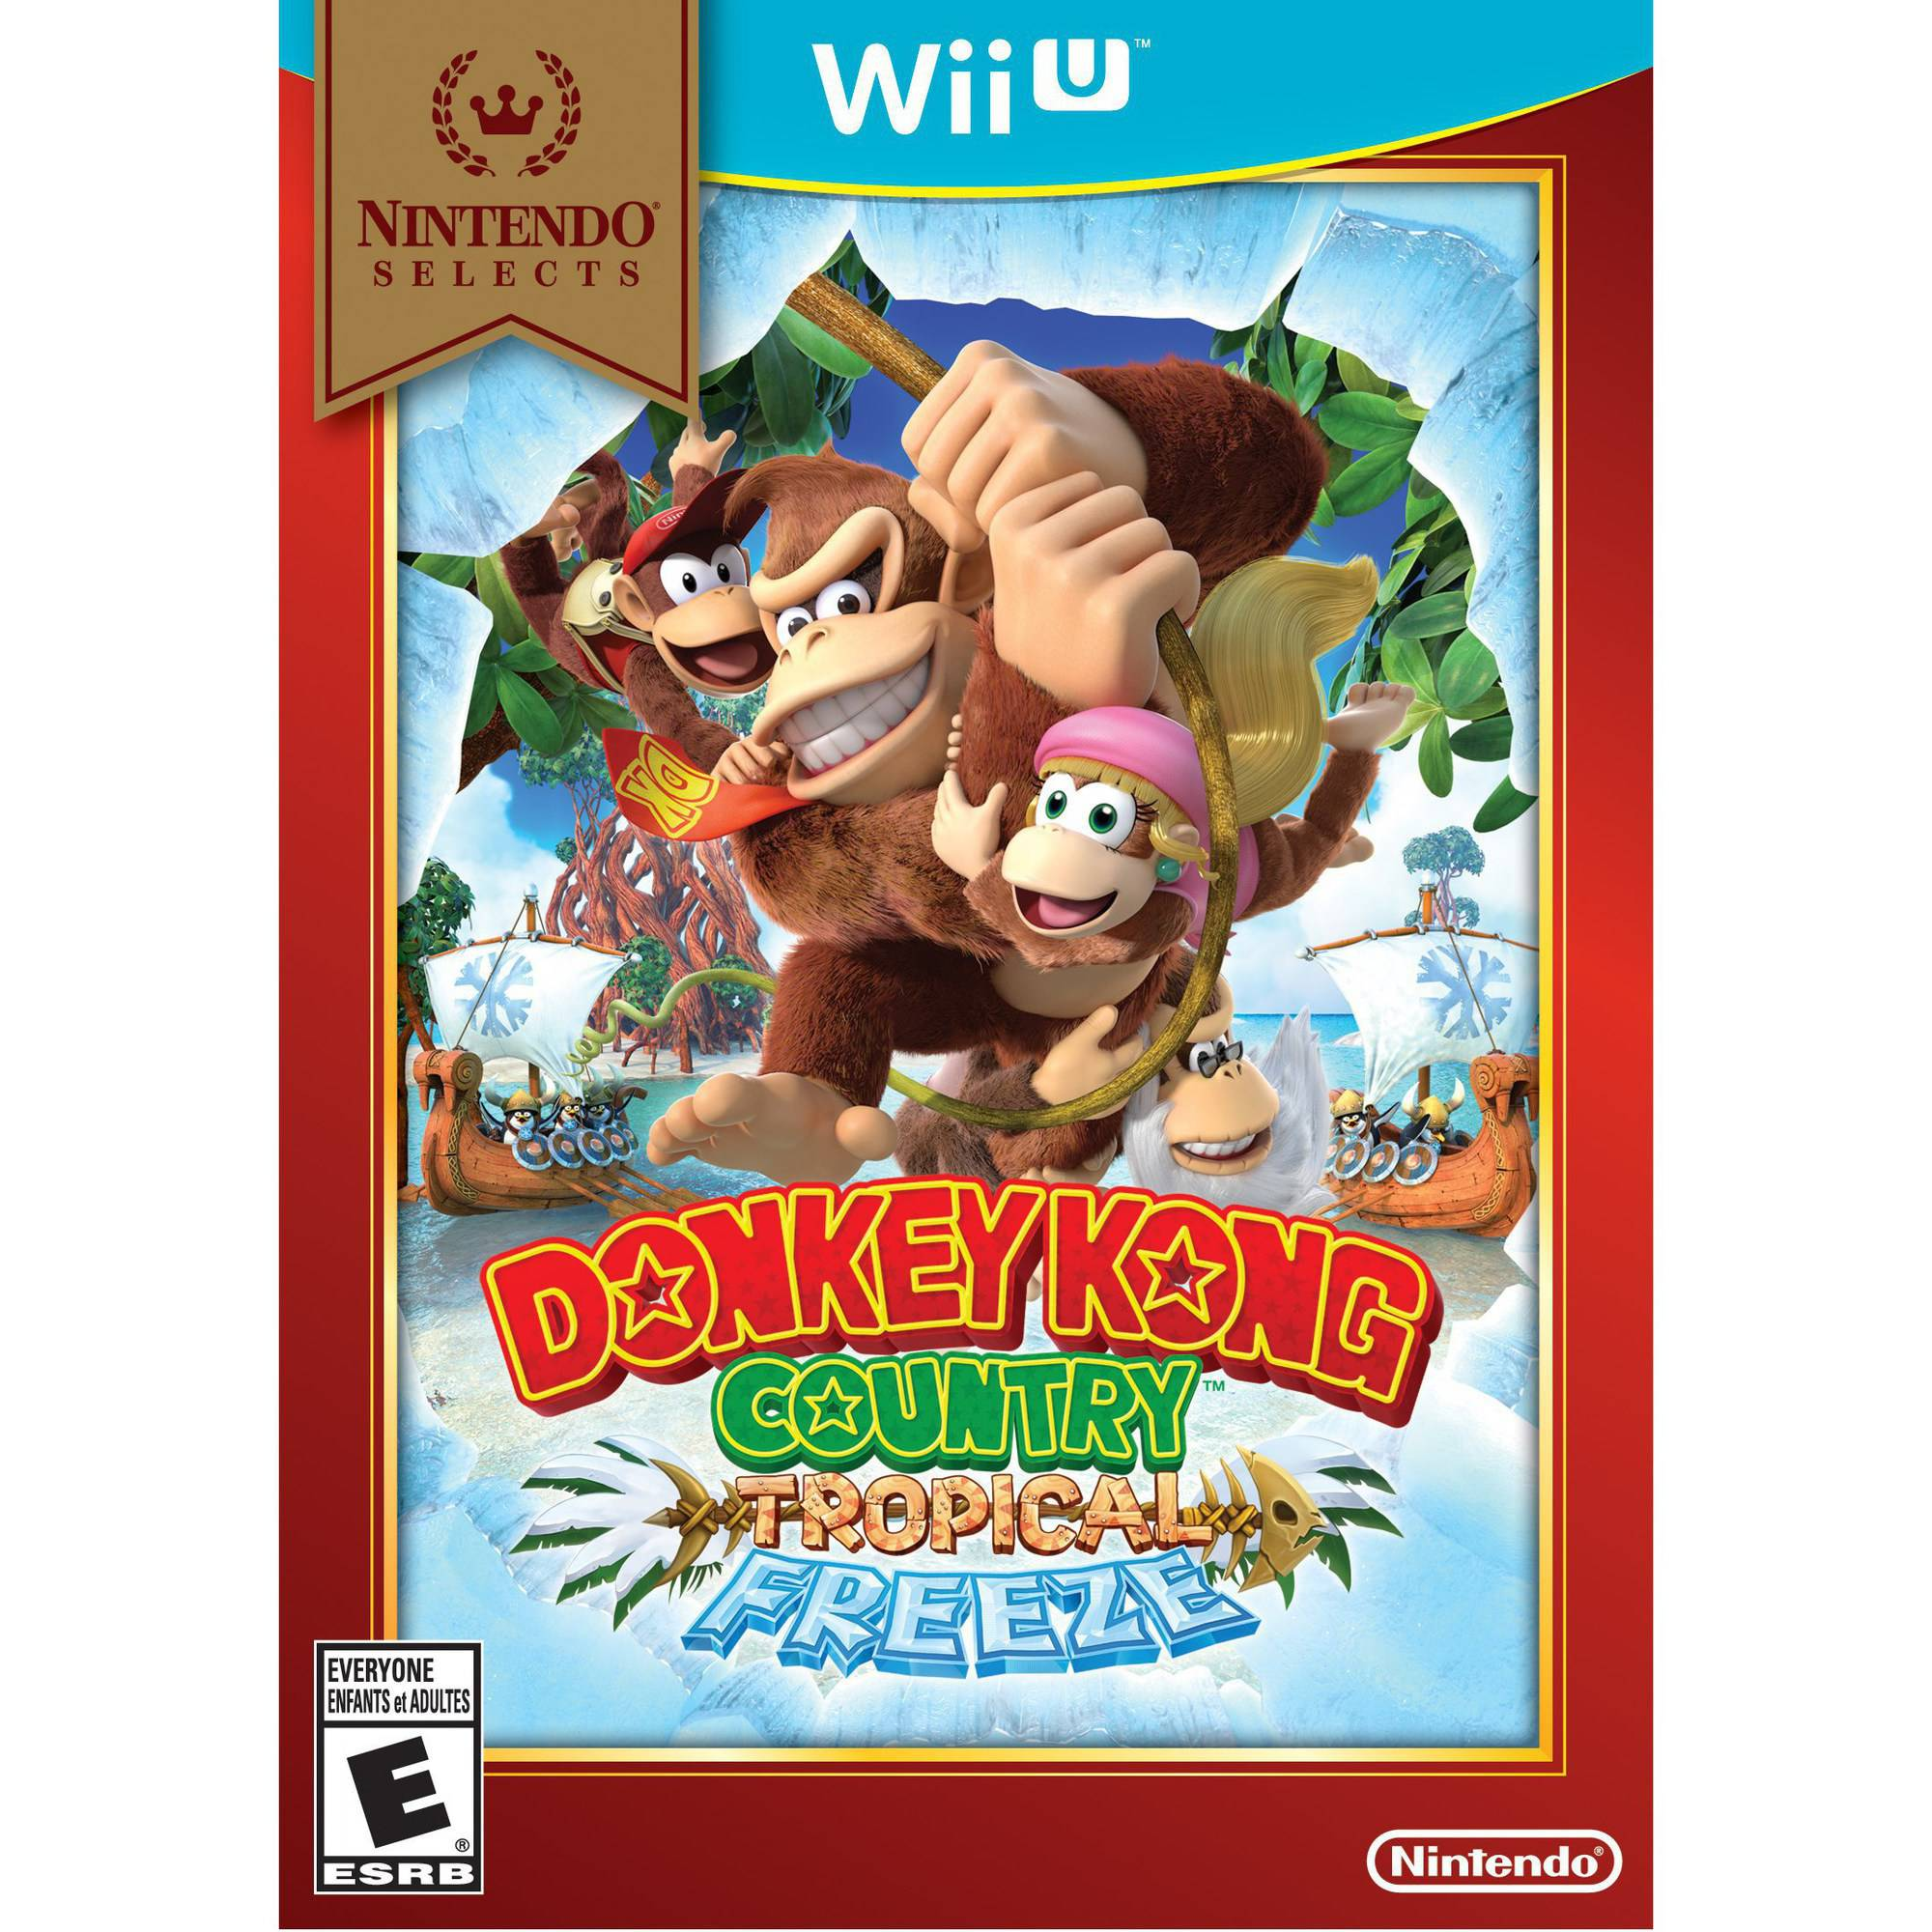 Donkey Kong Country Tropical Freeze - Nintendo Selects (Wii U)